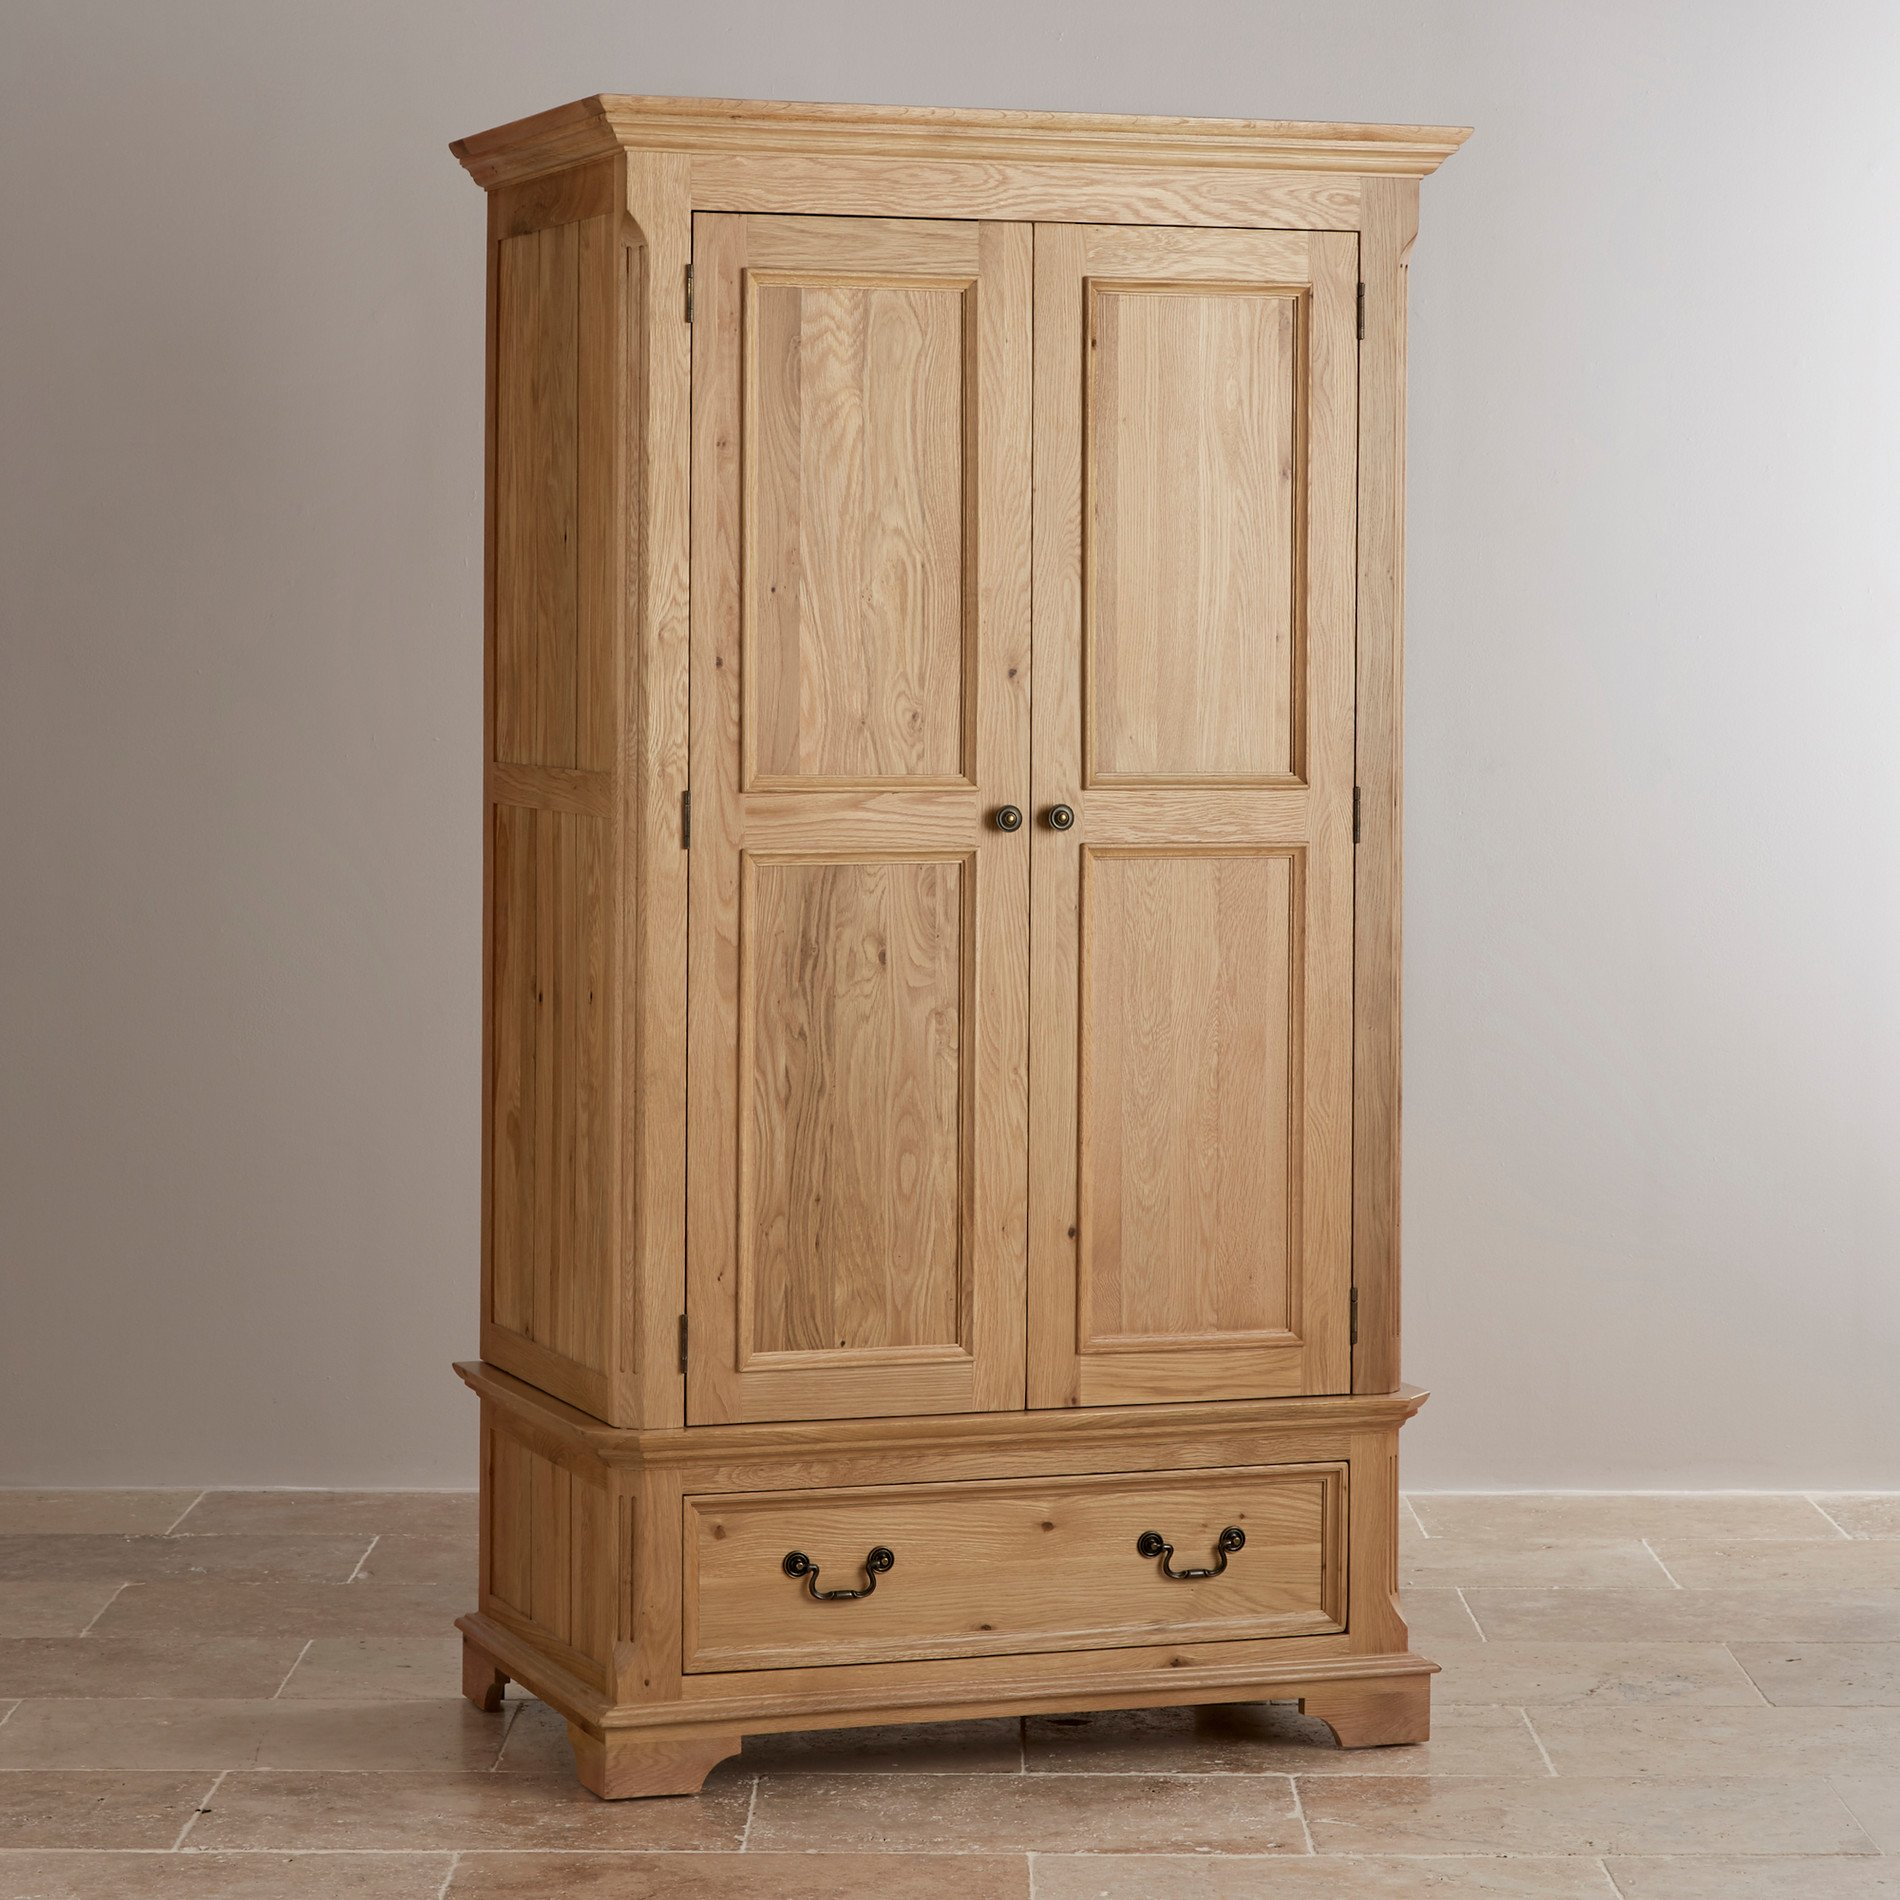 Double wardrobe in natural solid oak for Solid oak furniture